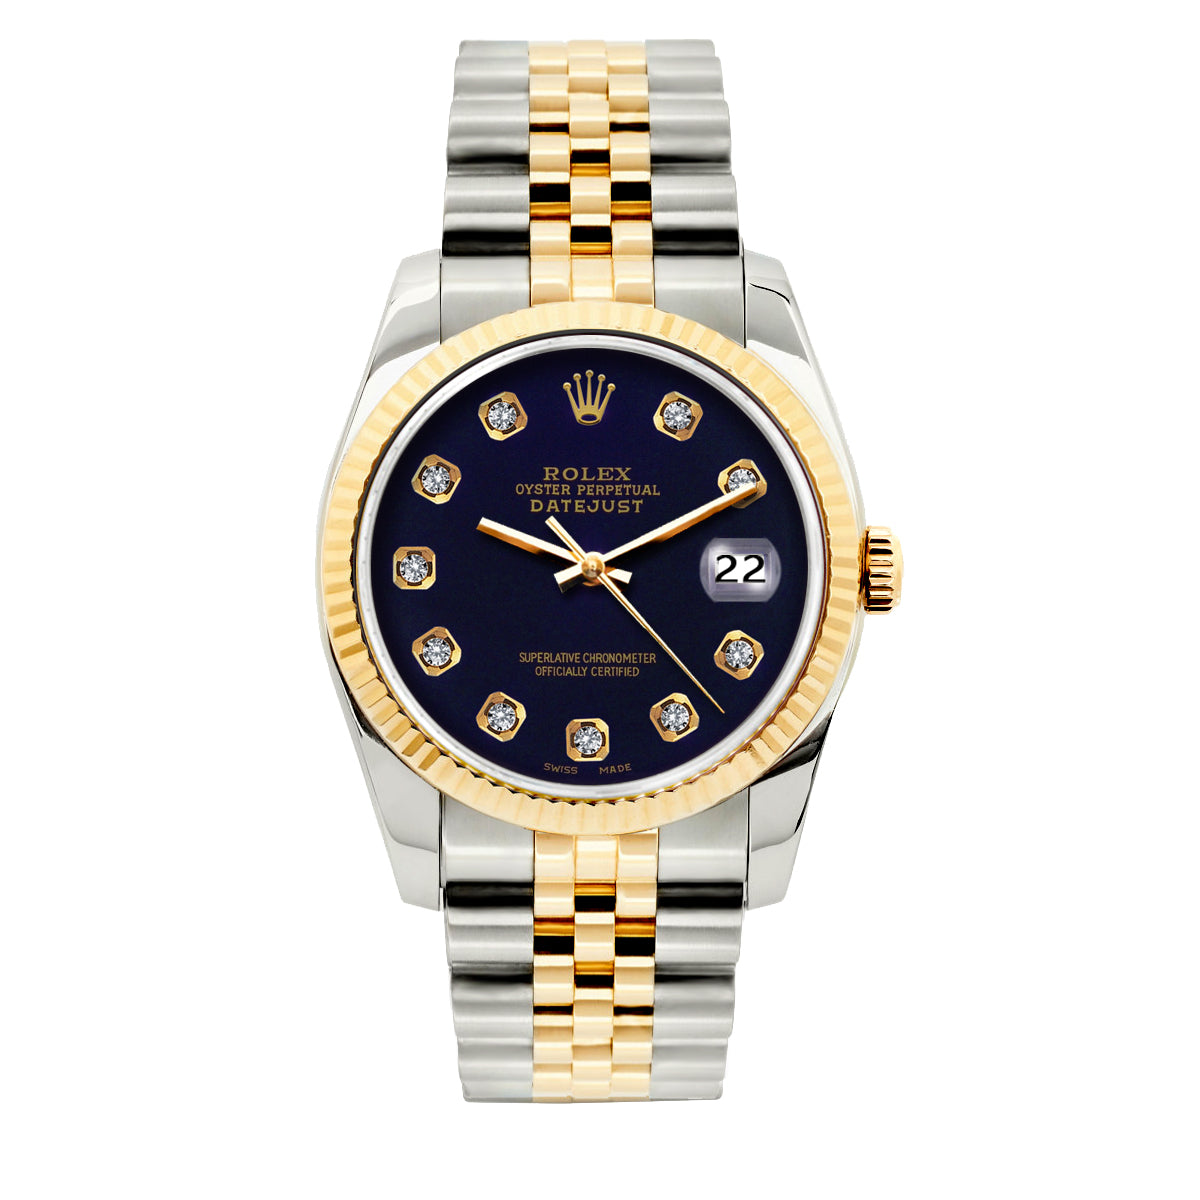 Rolex Datejust 36mm Yellow Gold and Stainless Steel Bracelet Purple Dial